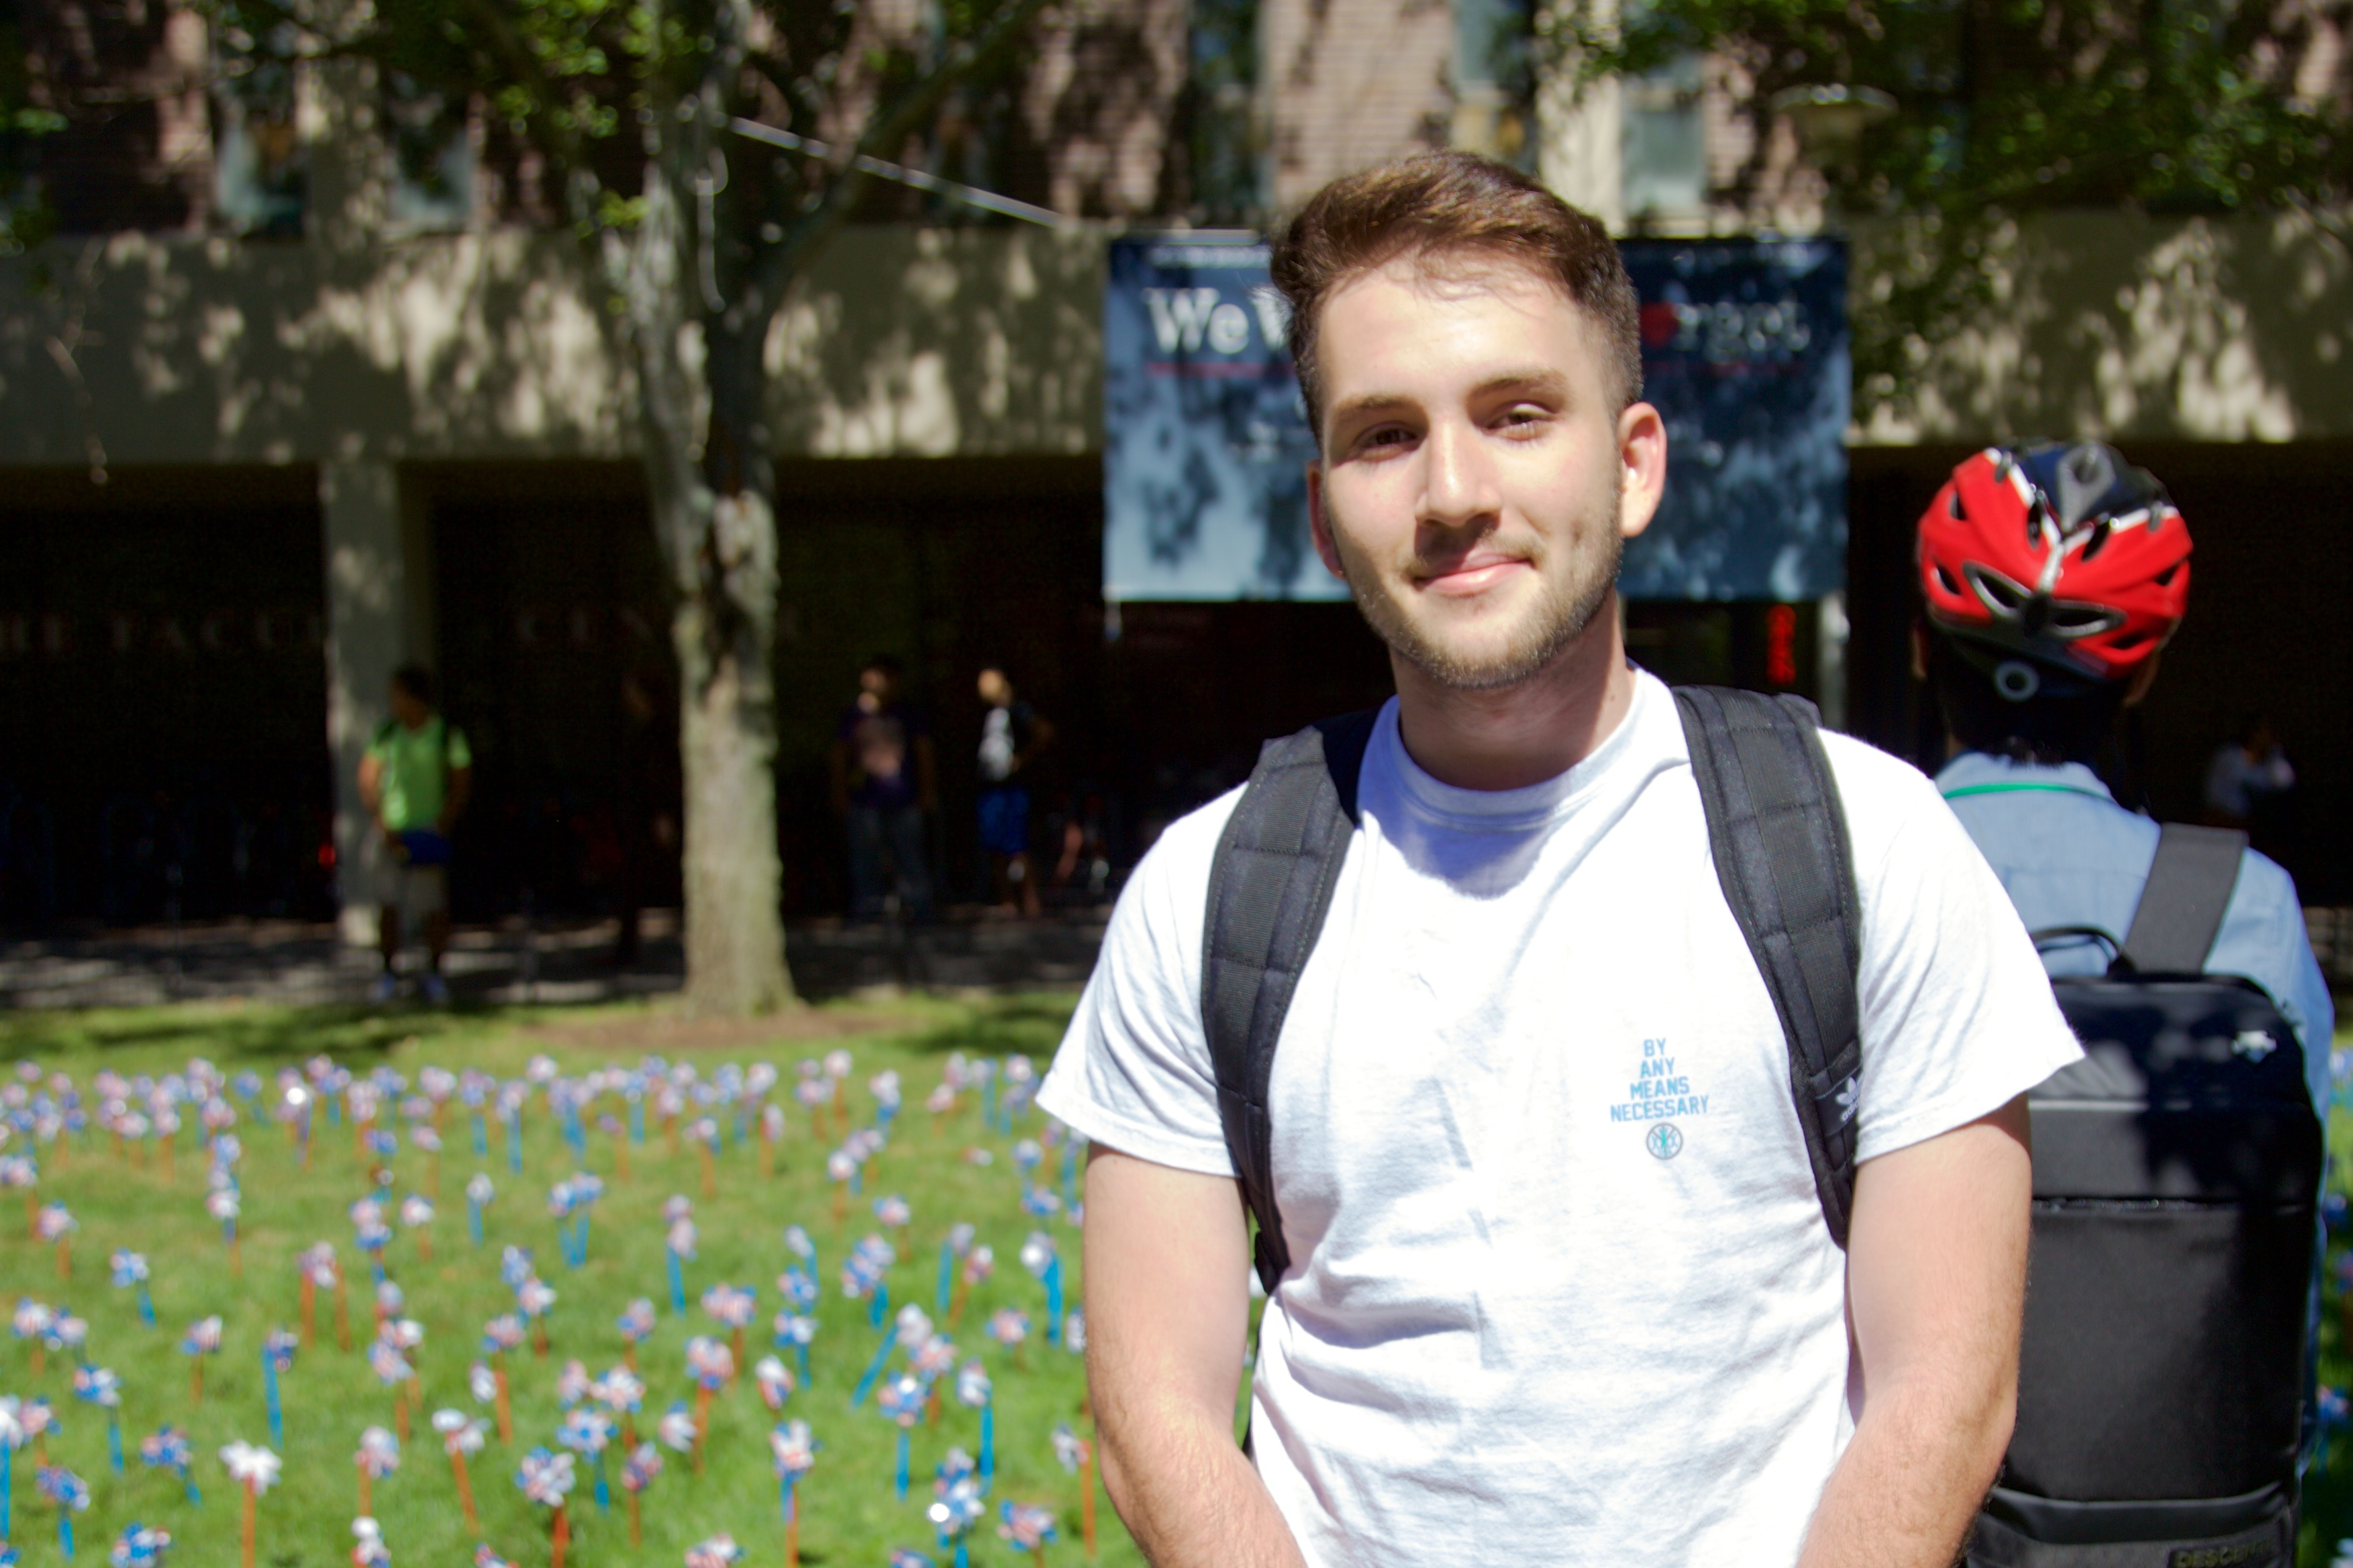 """I'm from Miami, Florida. I feel like it's good to remember but not to let it define relations with other countries and how we treat people and what not."" - Noyan Darici, economics major. ANGELICA CARPENTER/THE STATESMAN"